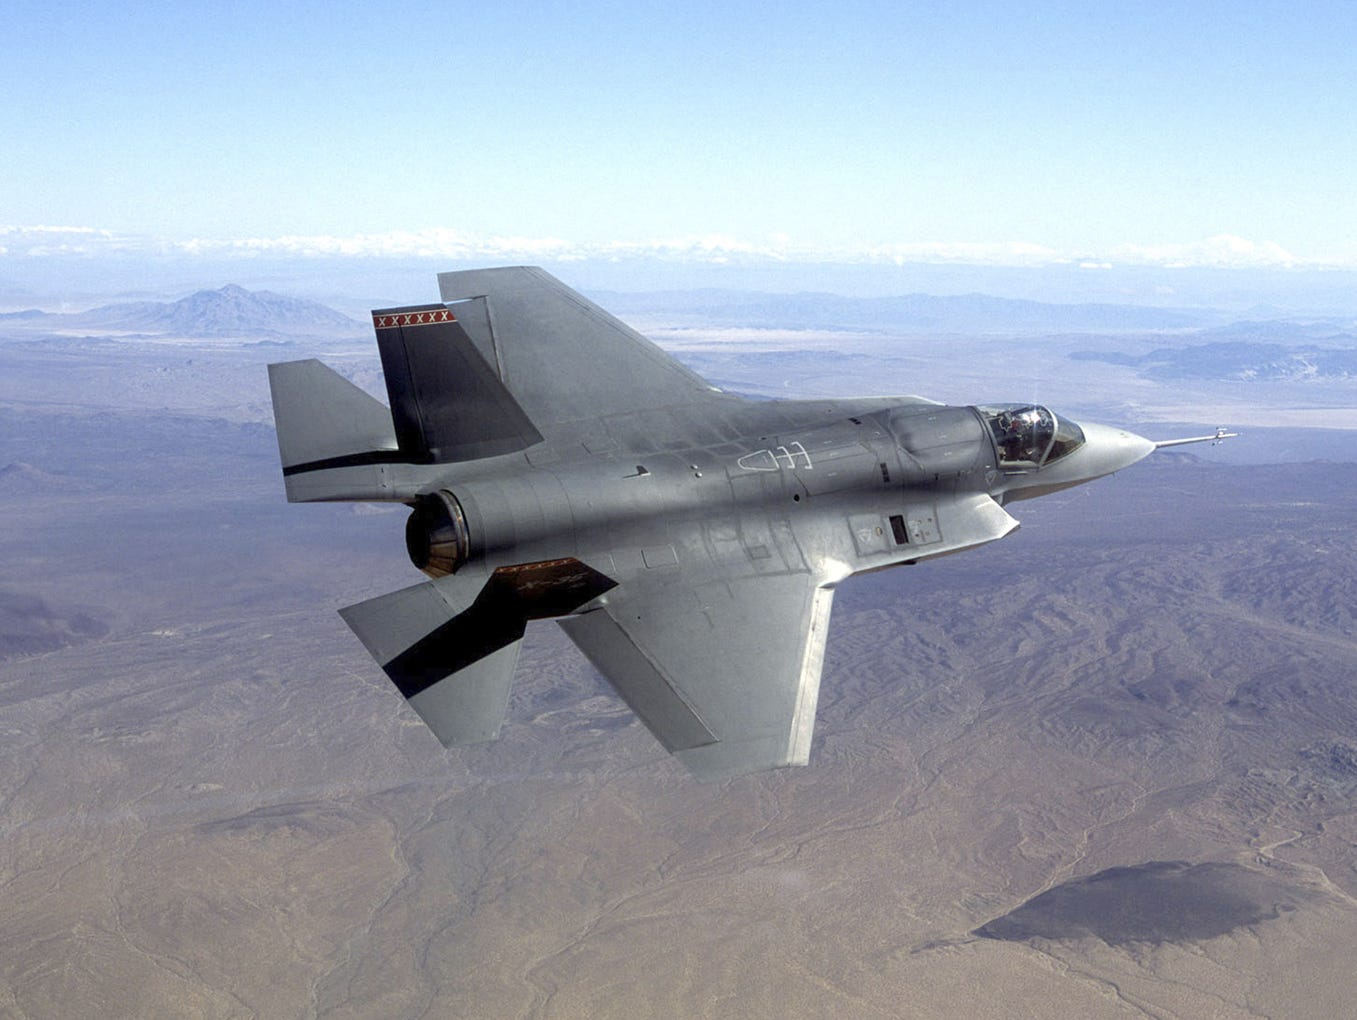 No. 68 (tie): Northrup Grumman | Space, defense, aviation and other products | 2019 employees: 2,700 | 2018 employees: 2,200 | Ownership: Public | Headquarters: Falls Church, Virginia | www.northropgrumman.com